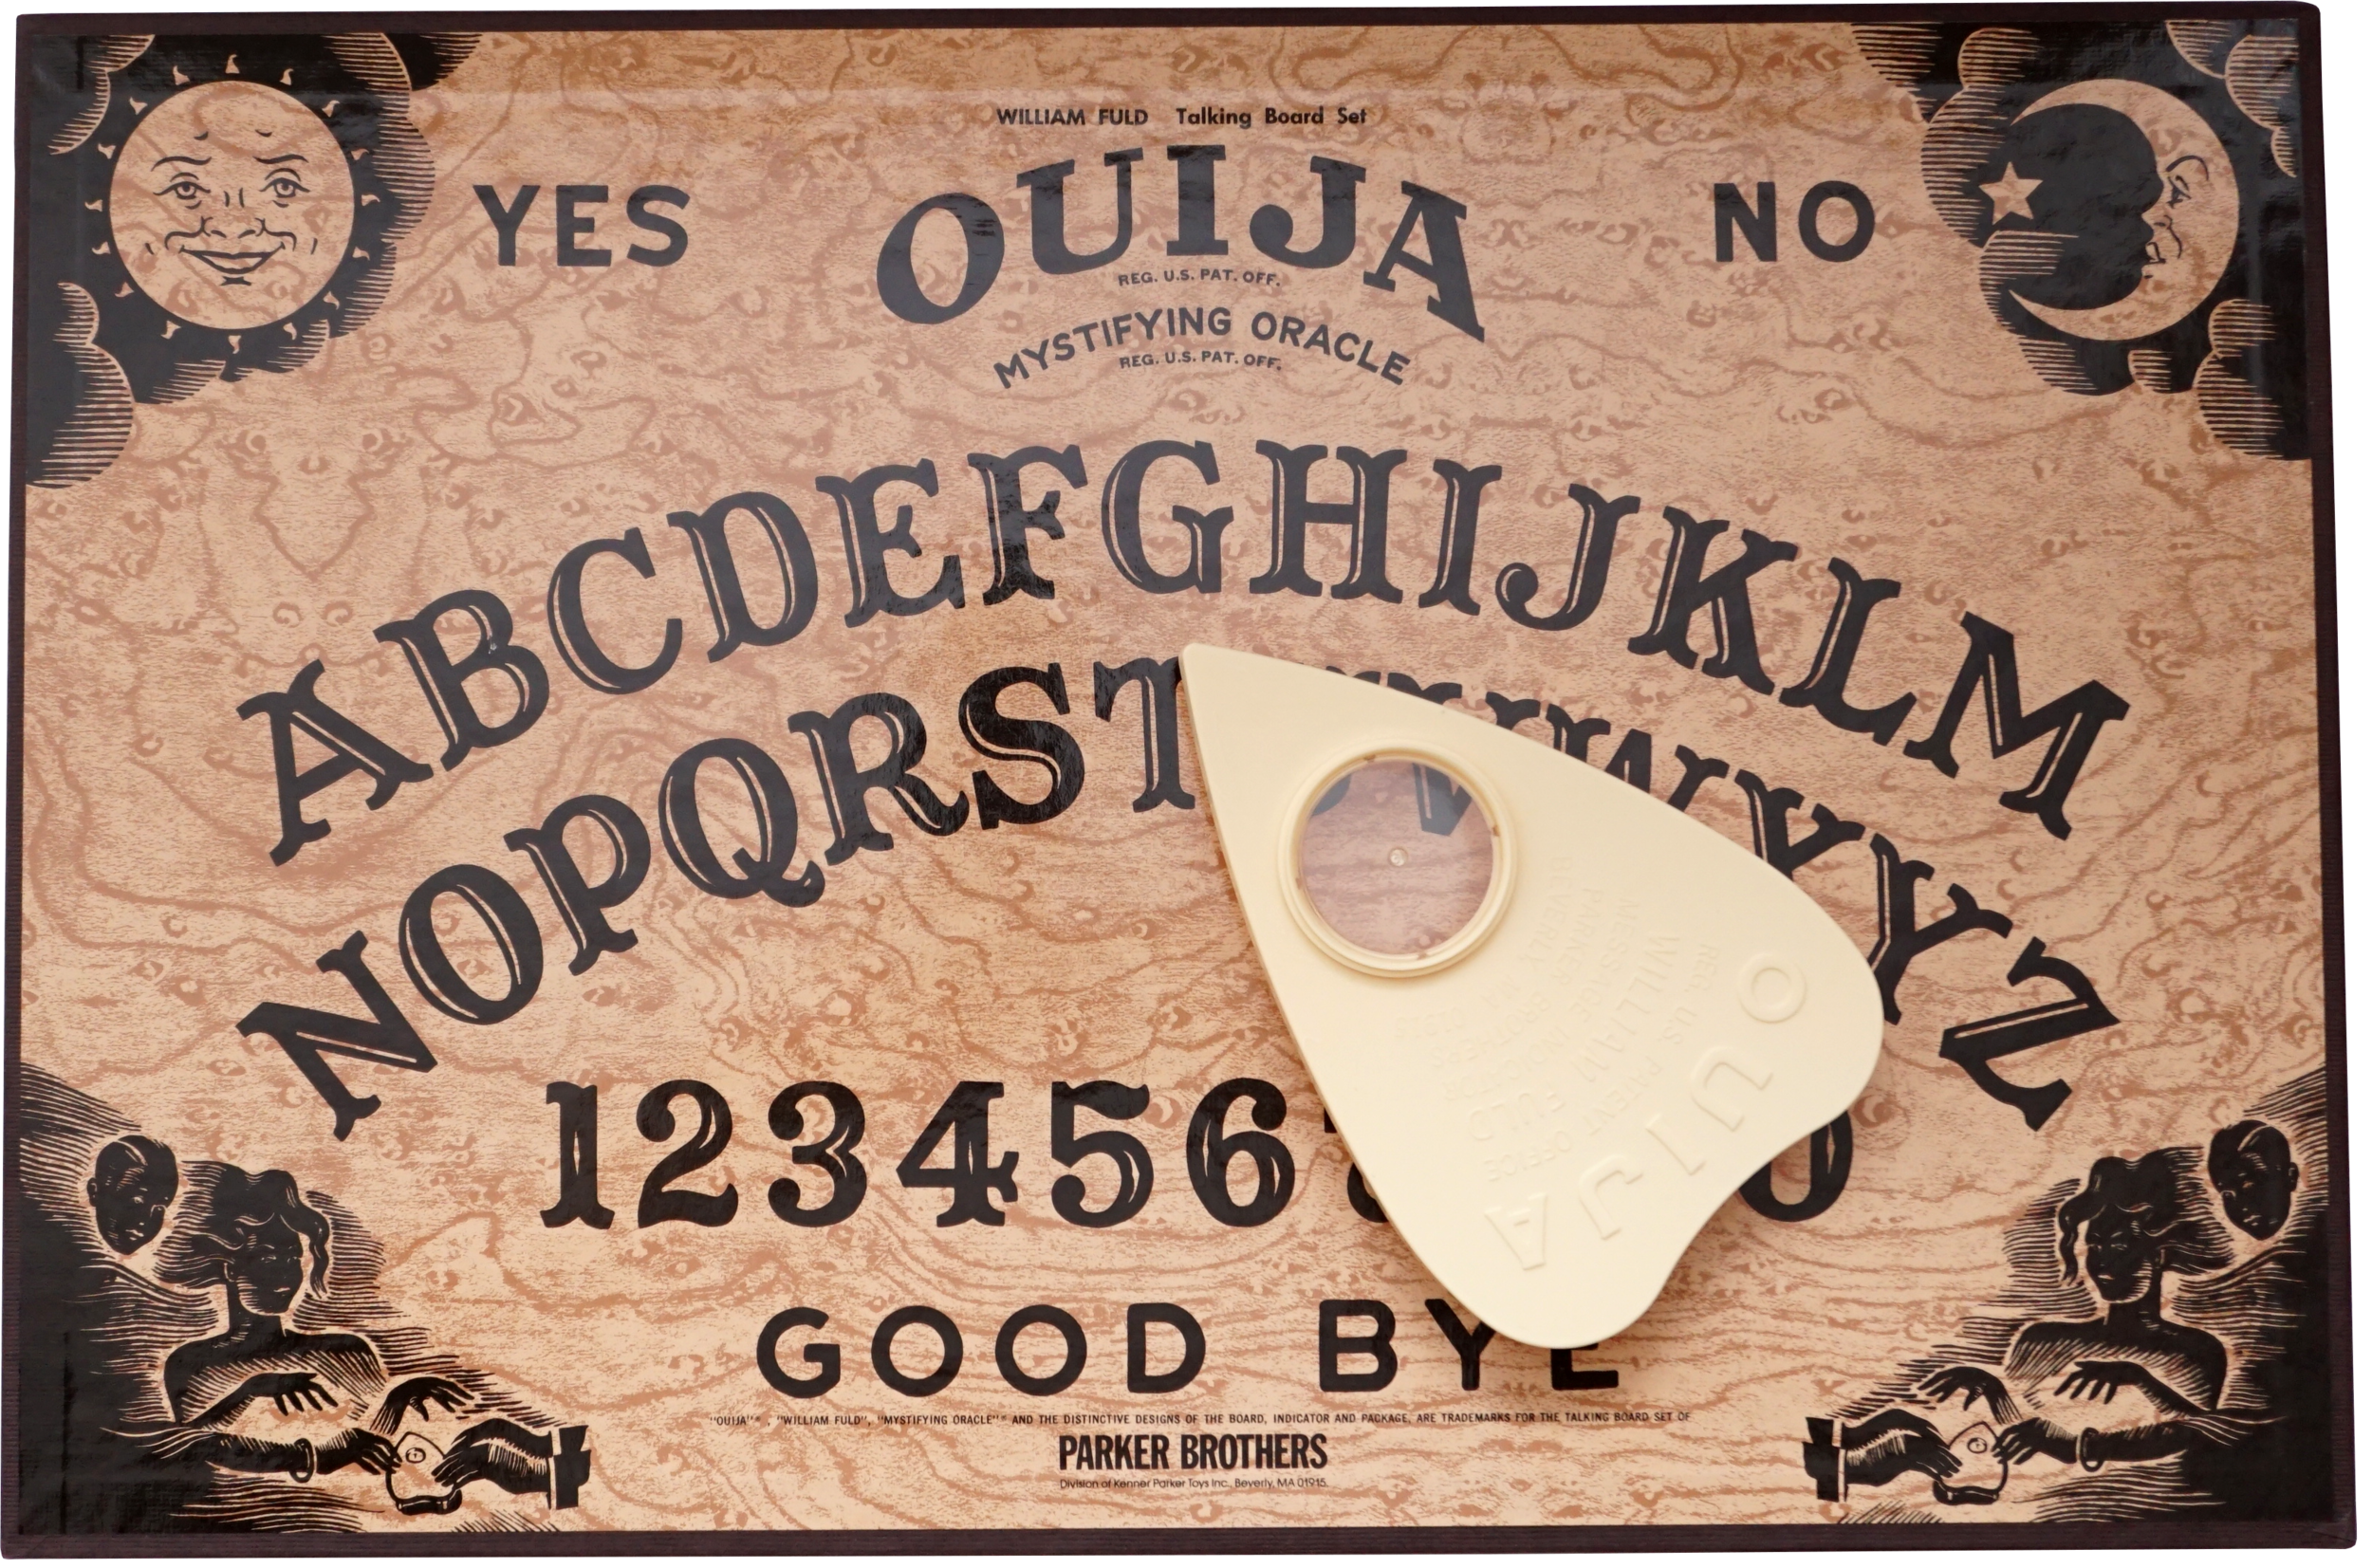 DD-1972-PARKER_BROTHERS-OUIJA_BOARD-4.png